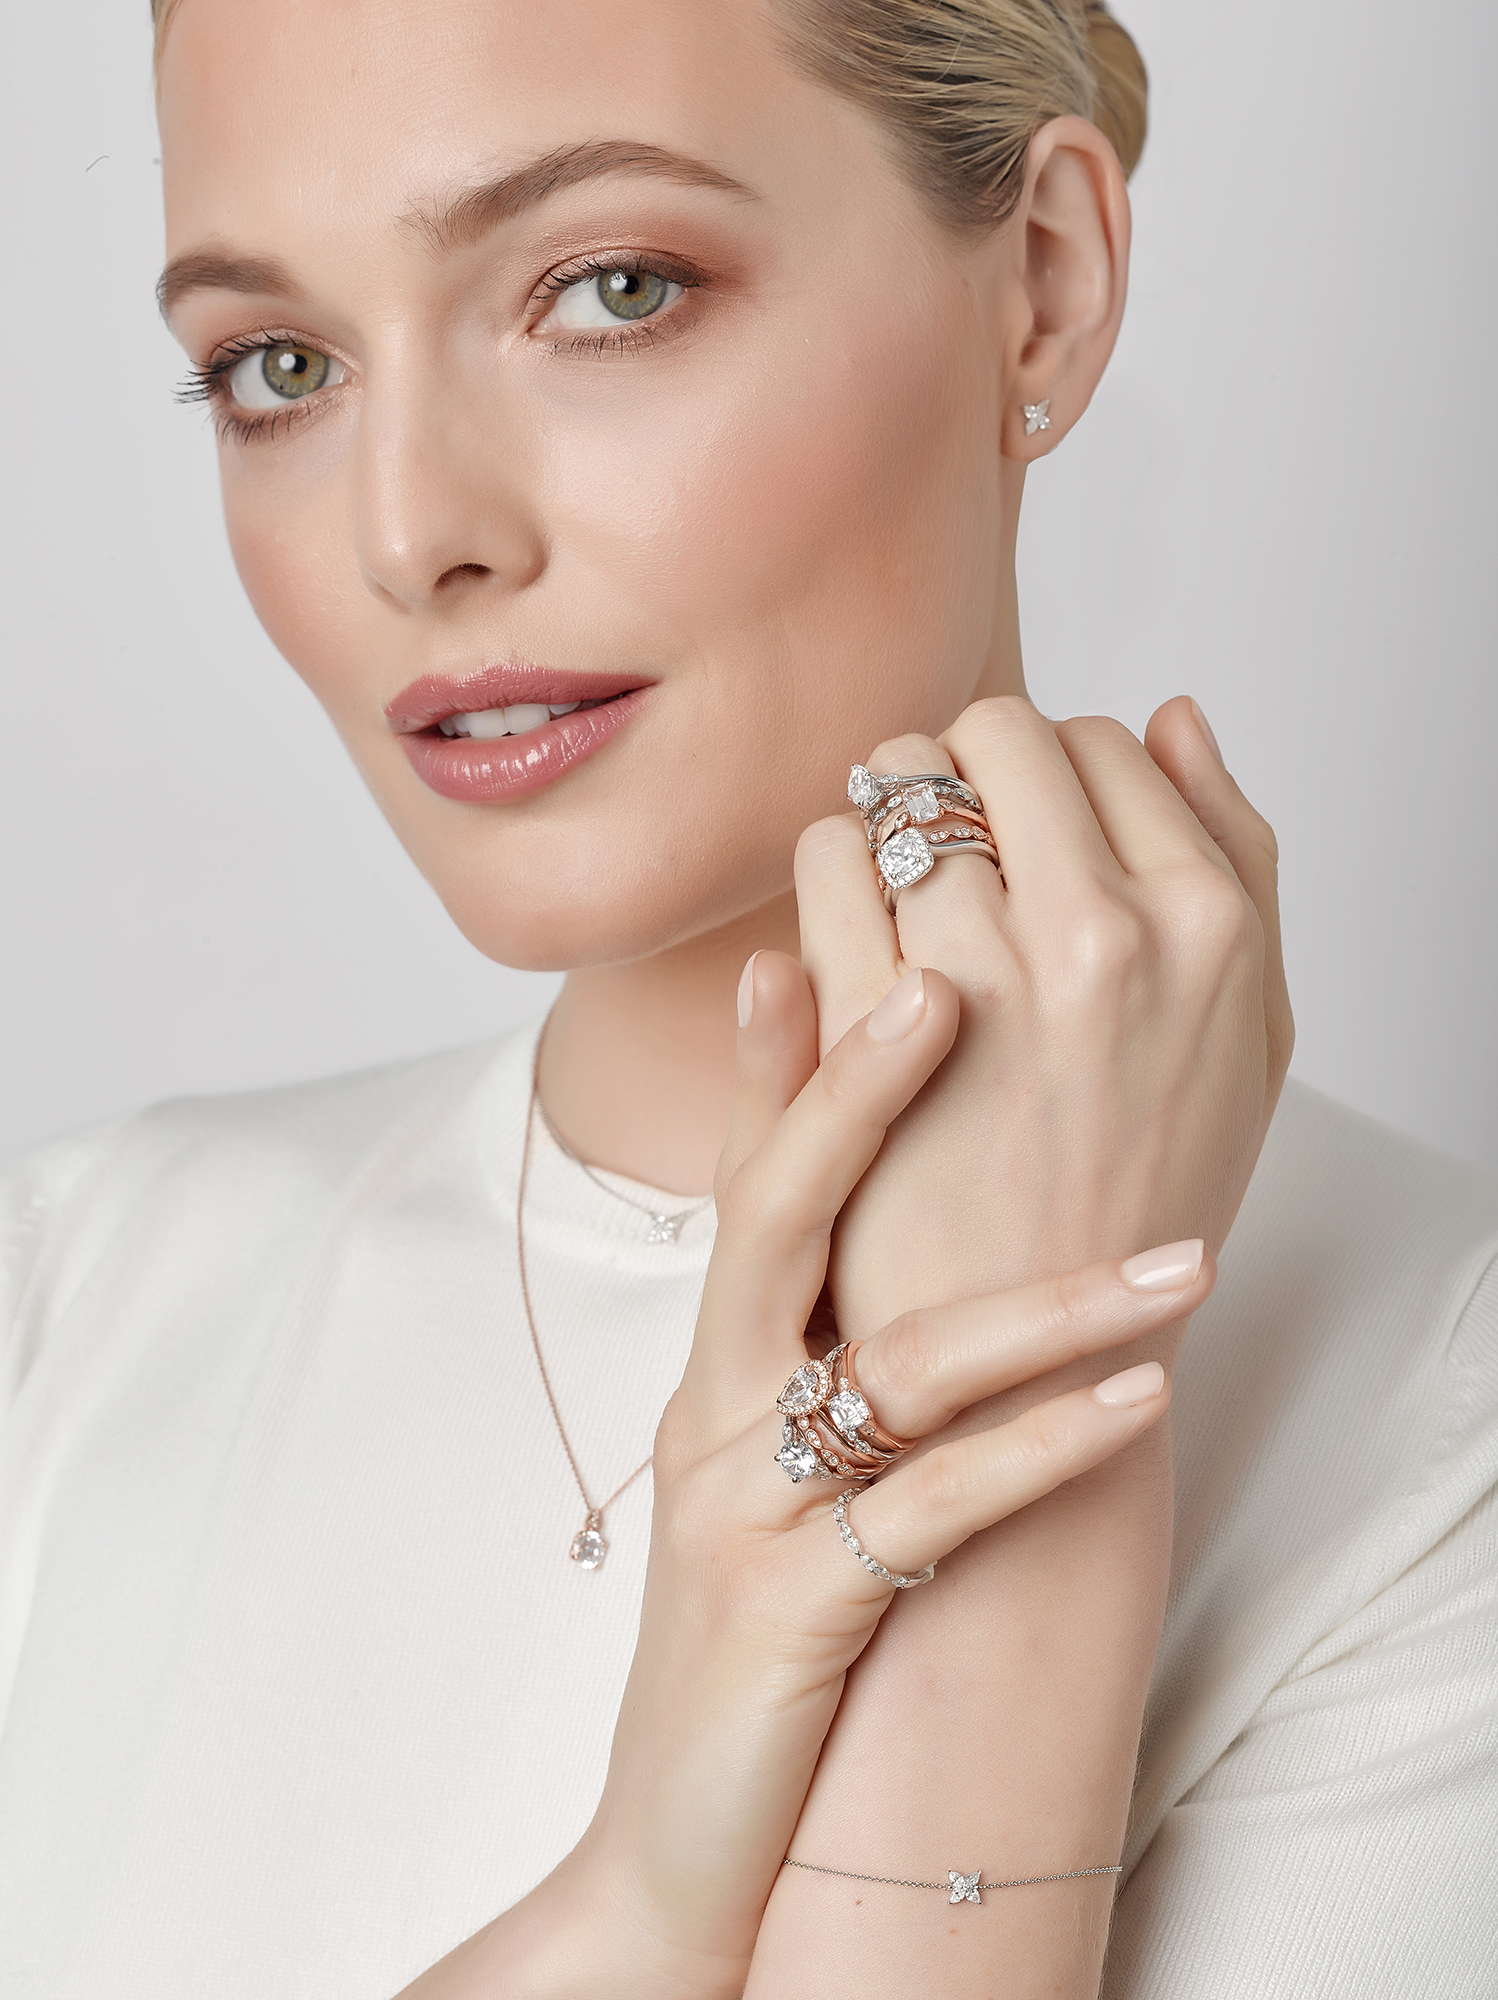 model wearing jewellery with white top and soft focused lighting hand together and model looking at camera.. Created in london jewellery photographic studio